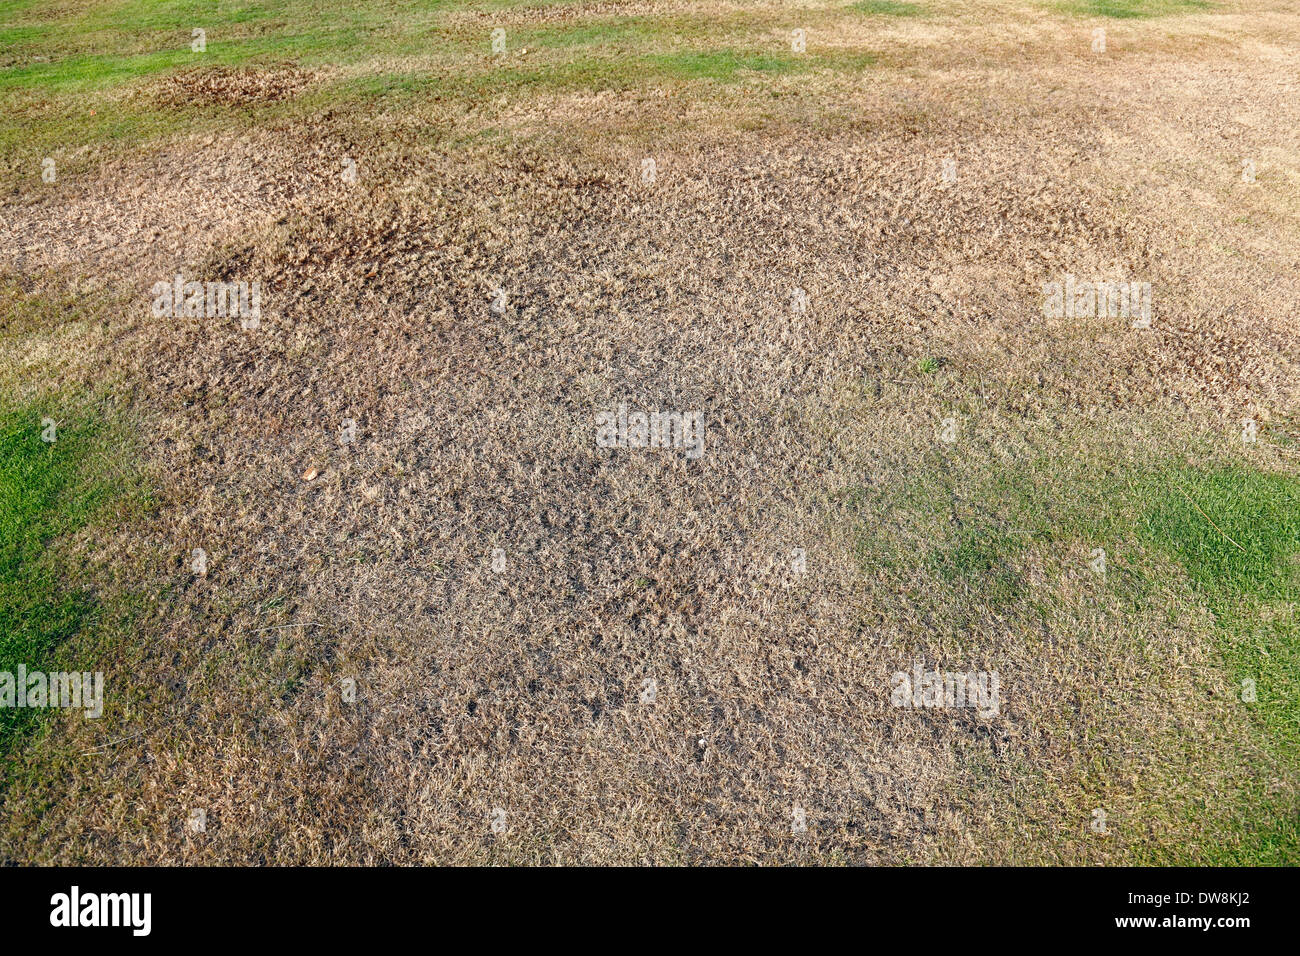 A patch of dry, brown, garden lawn, Scotland, UK - Stock Image